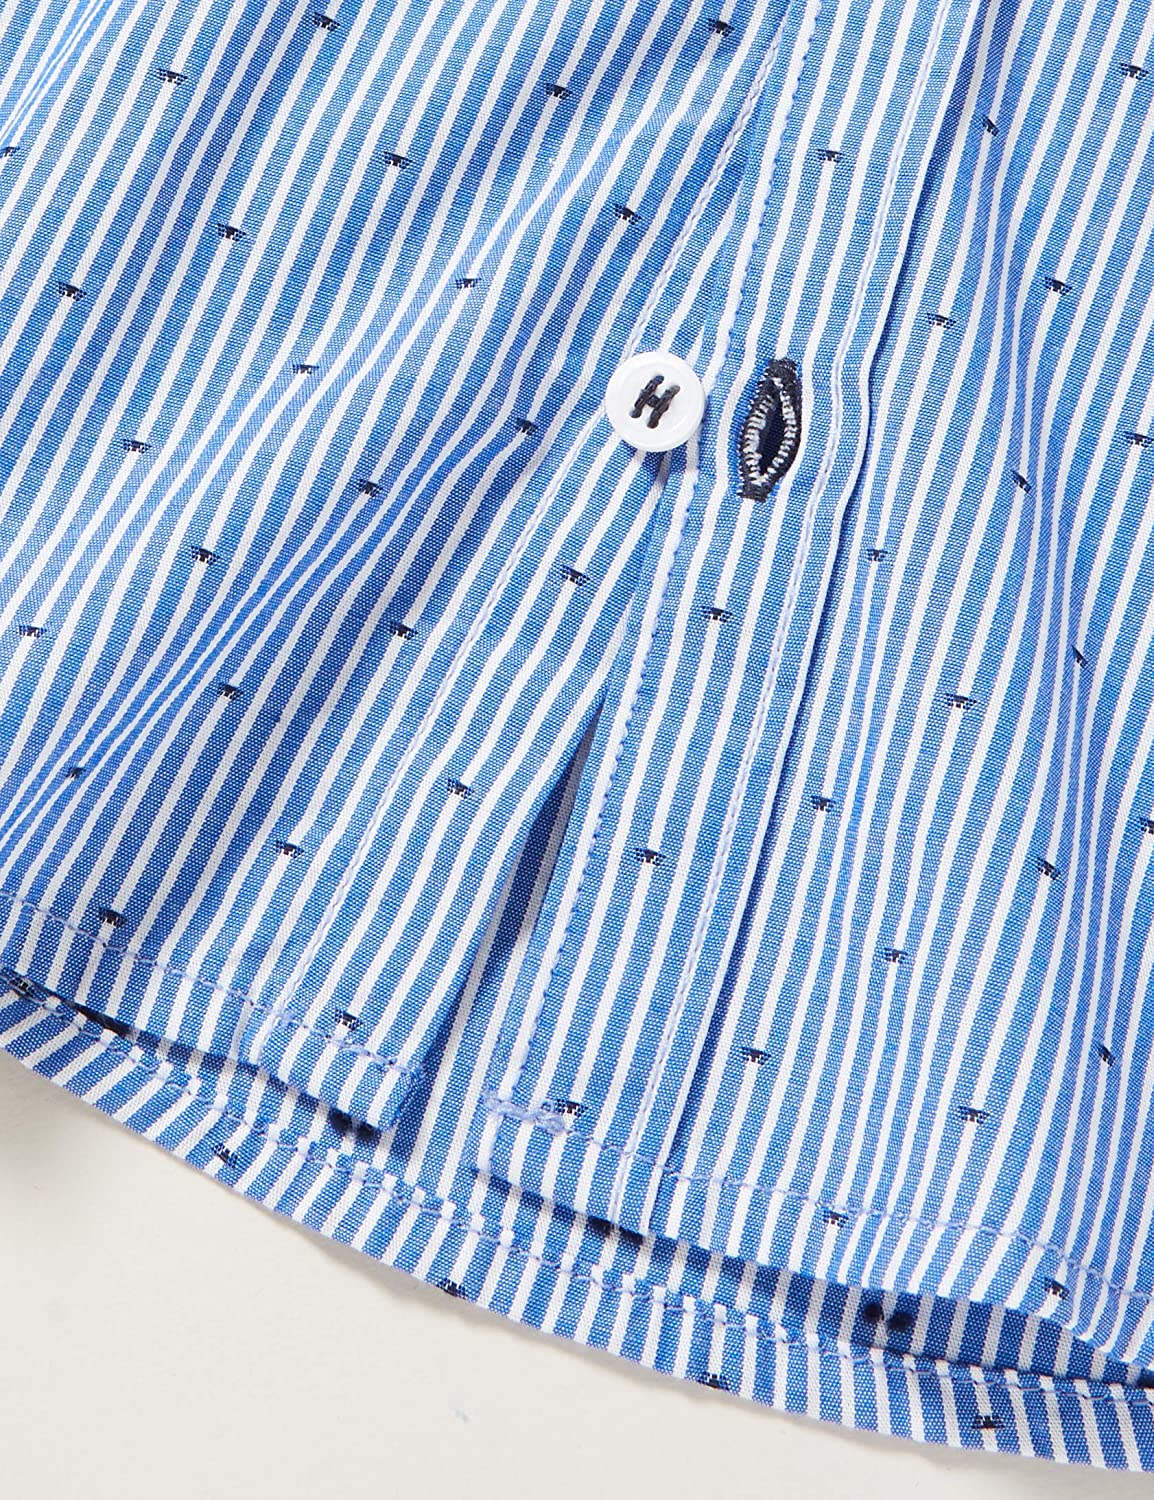 Tommy Hilfiger YD Stripe Clipping Shirt L//S Camicia Bambino